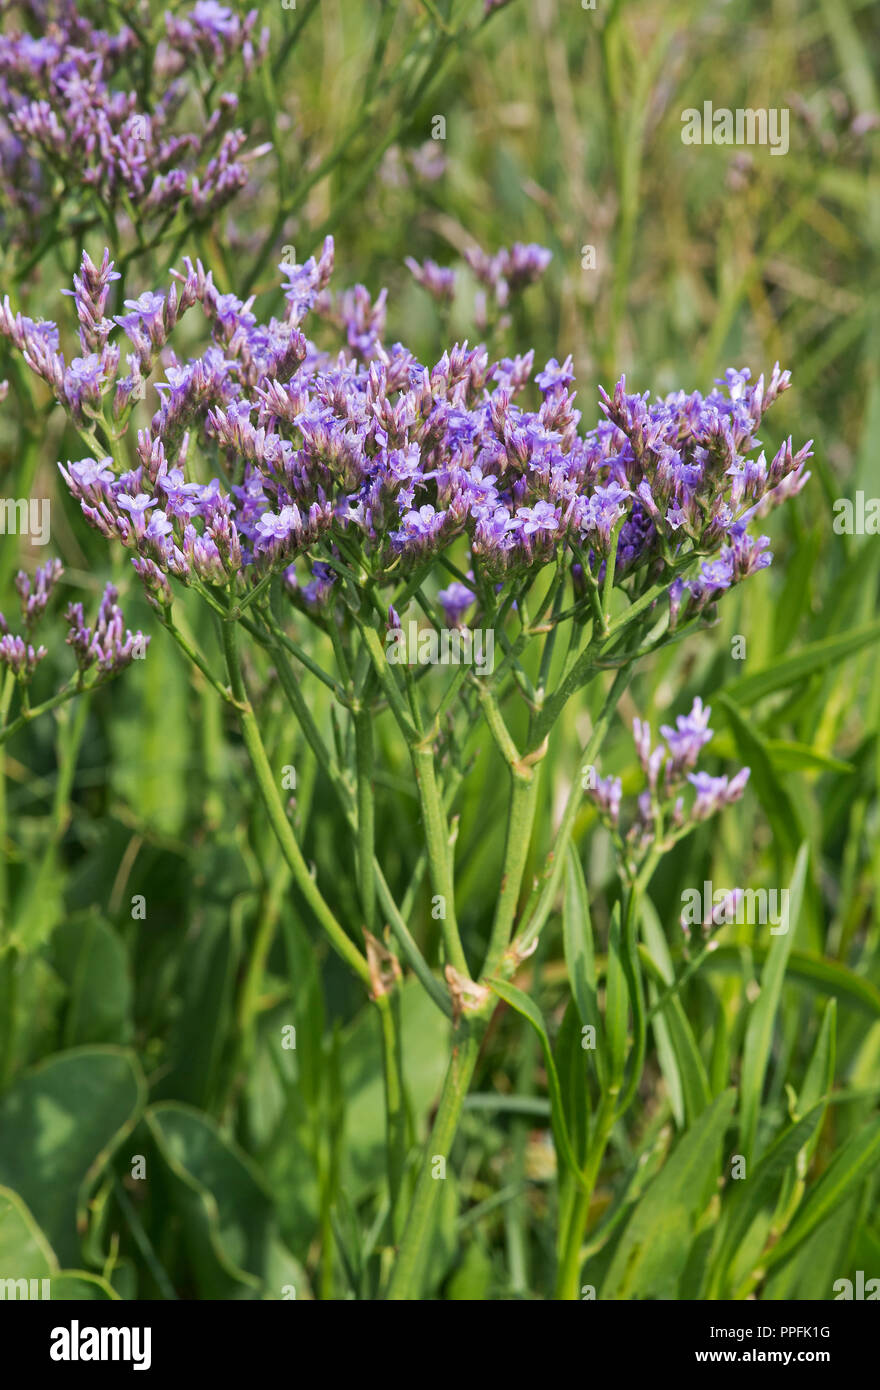 Blooming common sea lavender (Limonium vulgare), salt meadow in the intertidal zone at the North Sea coast, Schleswig-Holstein - Stock Image